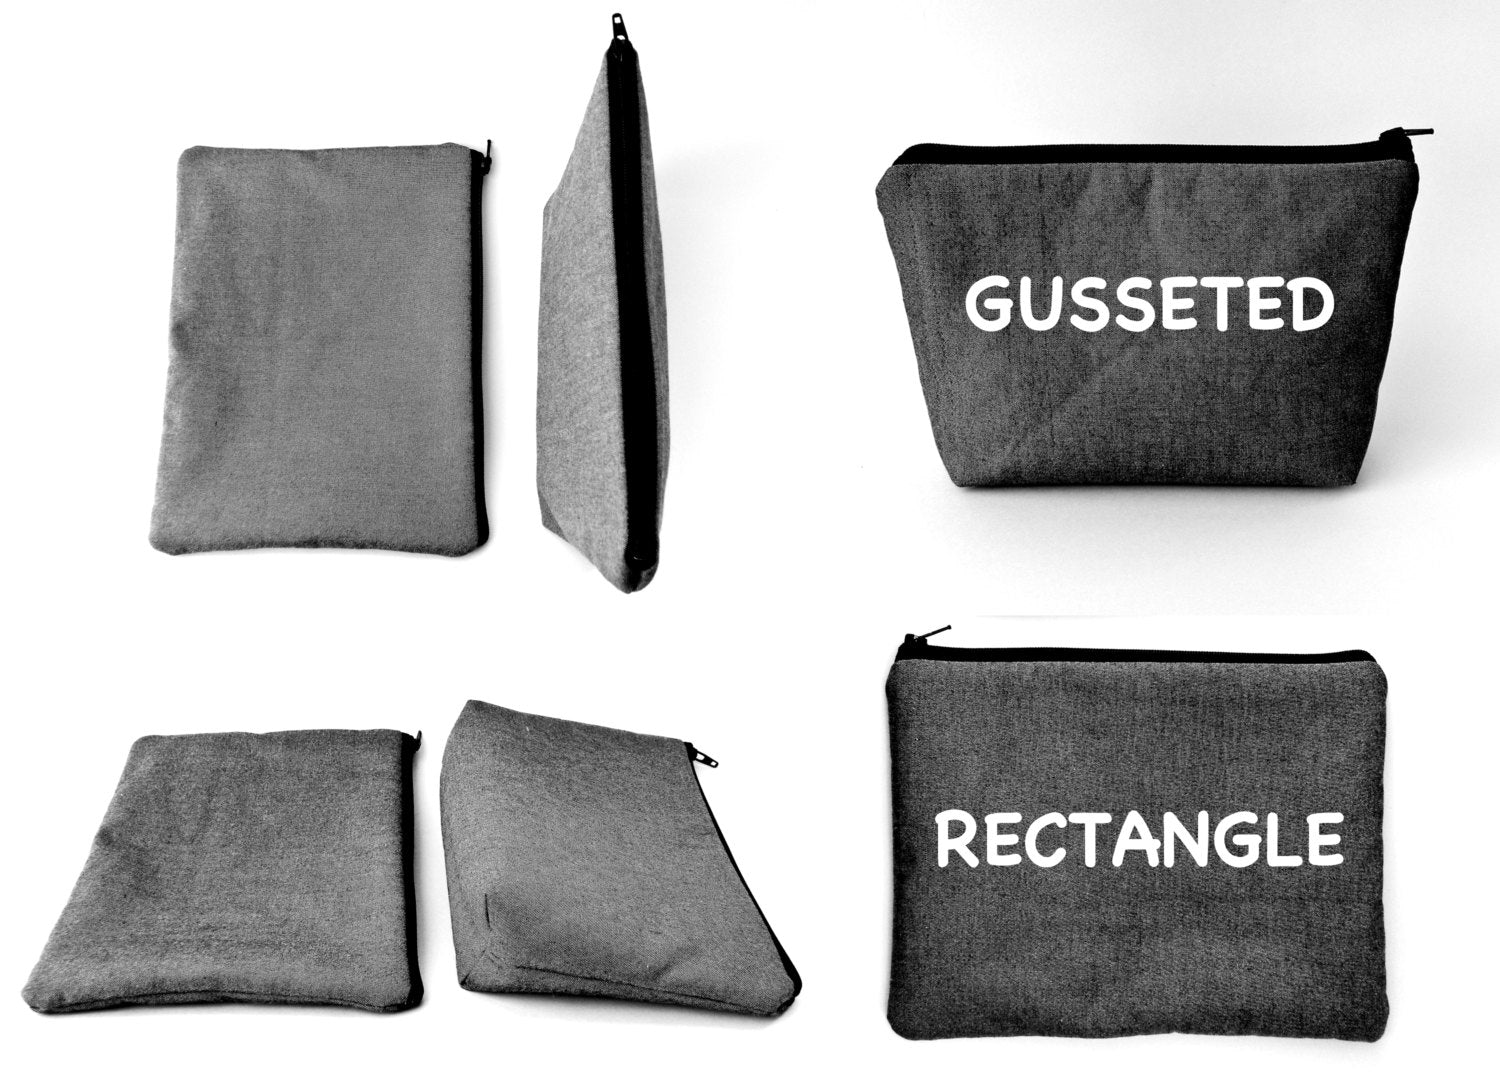 Bag style examples Gusseted and Rectangle